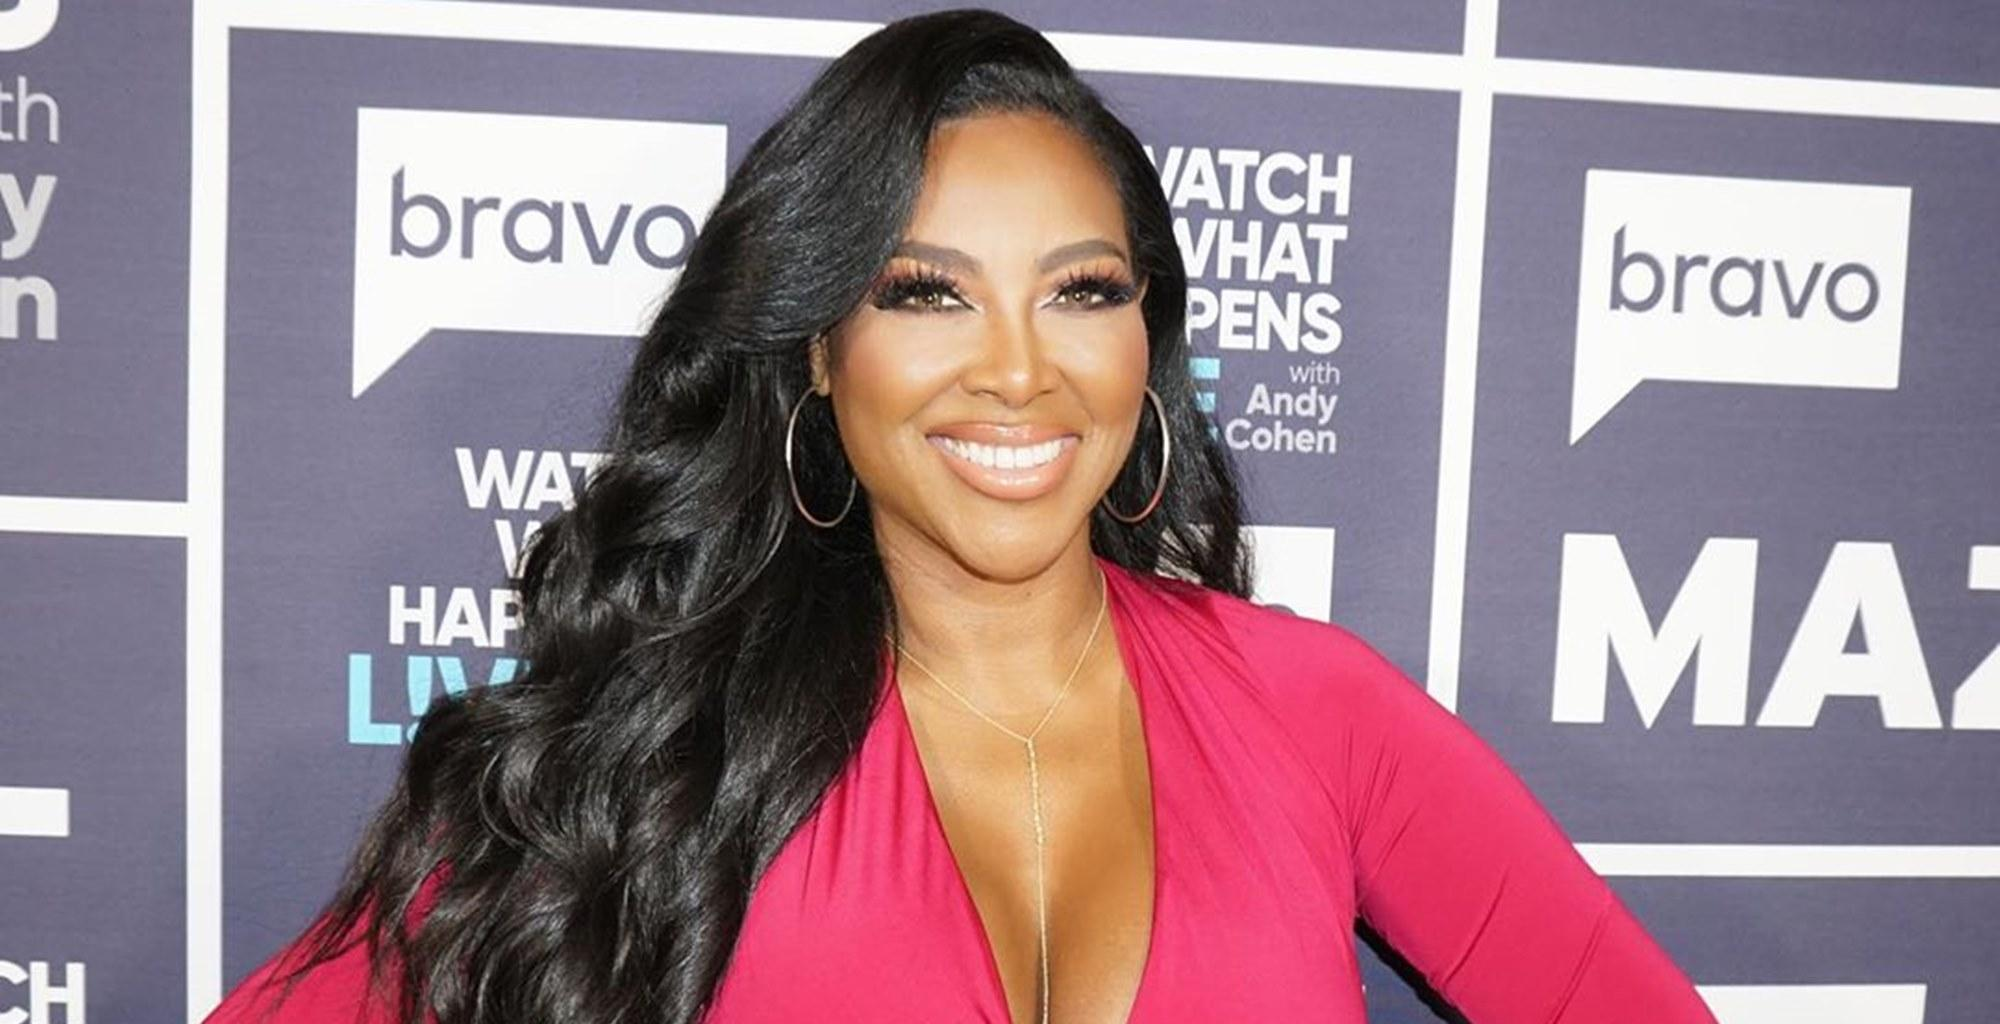 Kenya Moore Gets Emotional While Talking About Her Estranged Mother's Recent Surprising And Loving Gesture